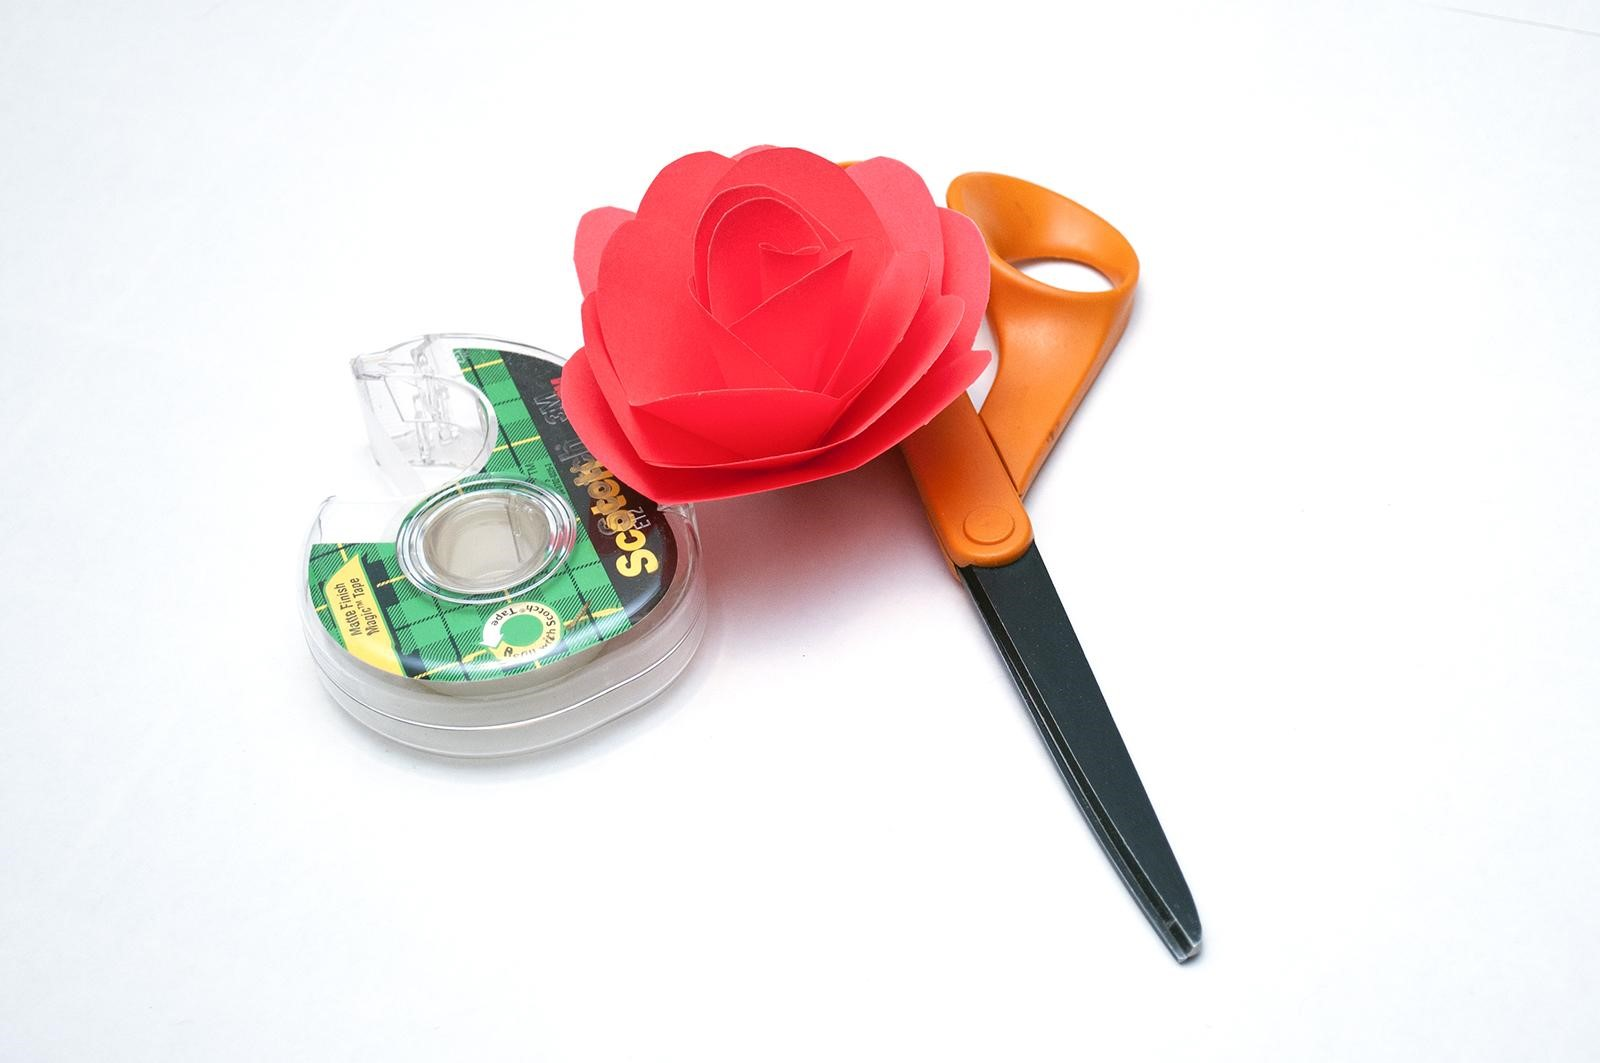 Red paper rose sitting between scissors and a tape dispenser